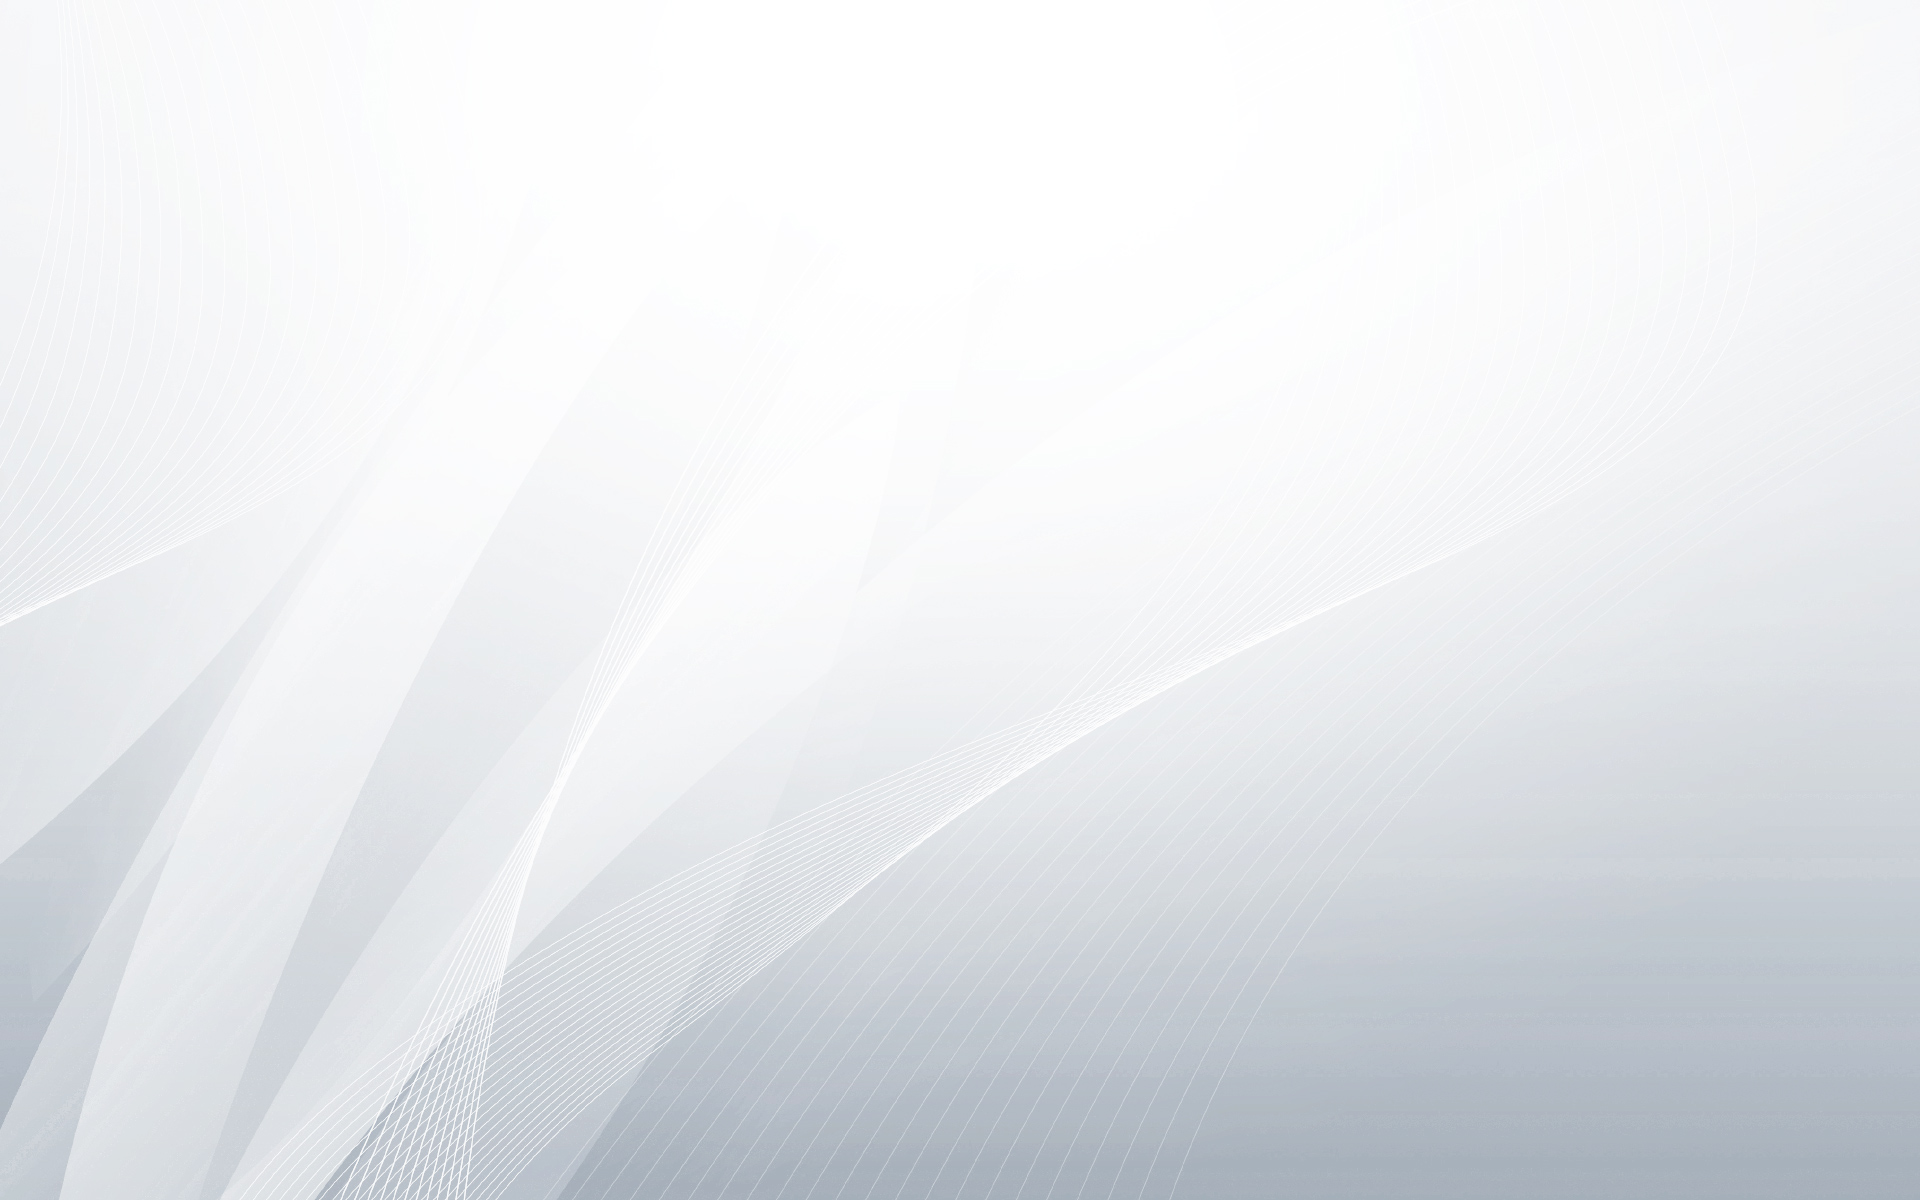 Simple Backgrounds 6794212 1920x1200